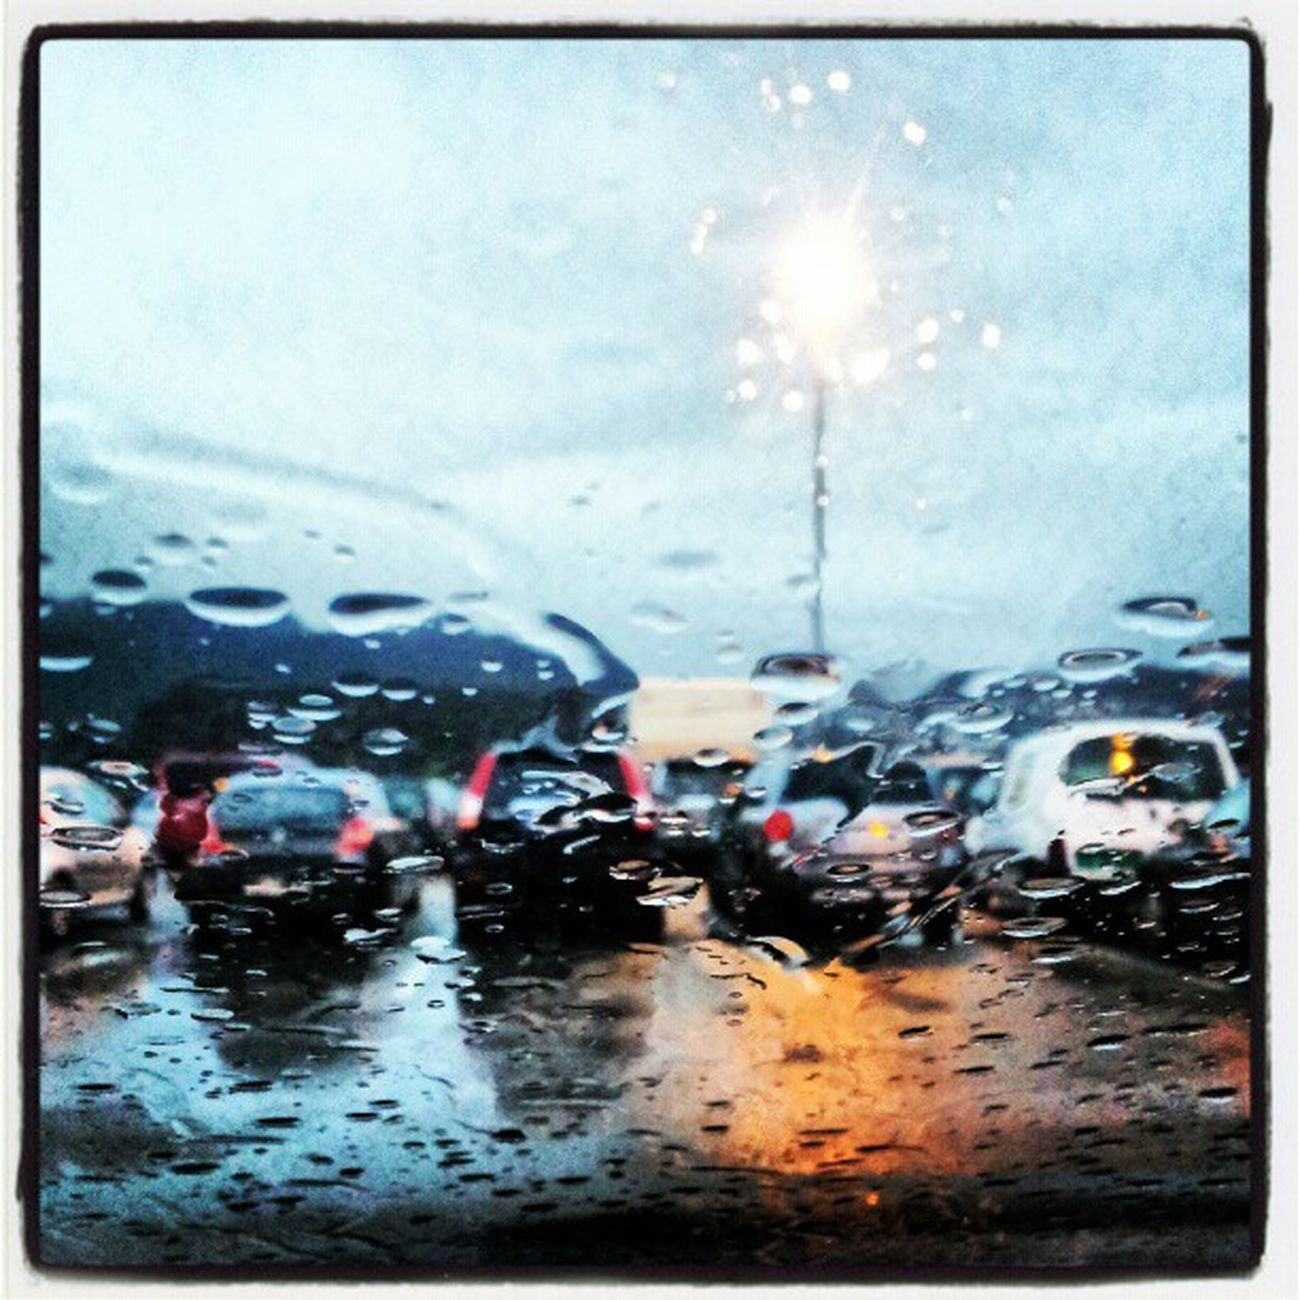 Sitting in my Car . It's raining.... Of course... Weeks now... :-\ Rain Raining Travel mytravelgram bestoftheday bestshooter picoftheday Askøy, Norway